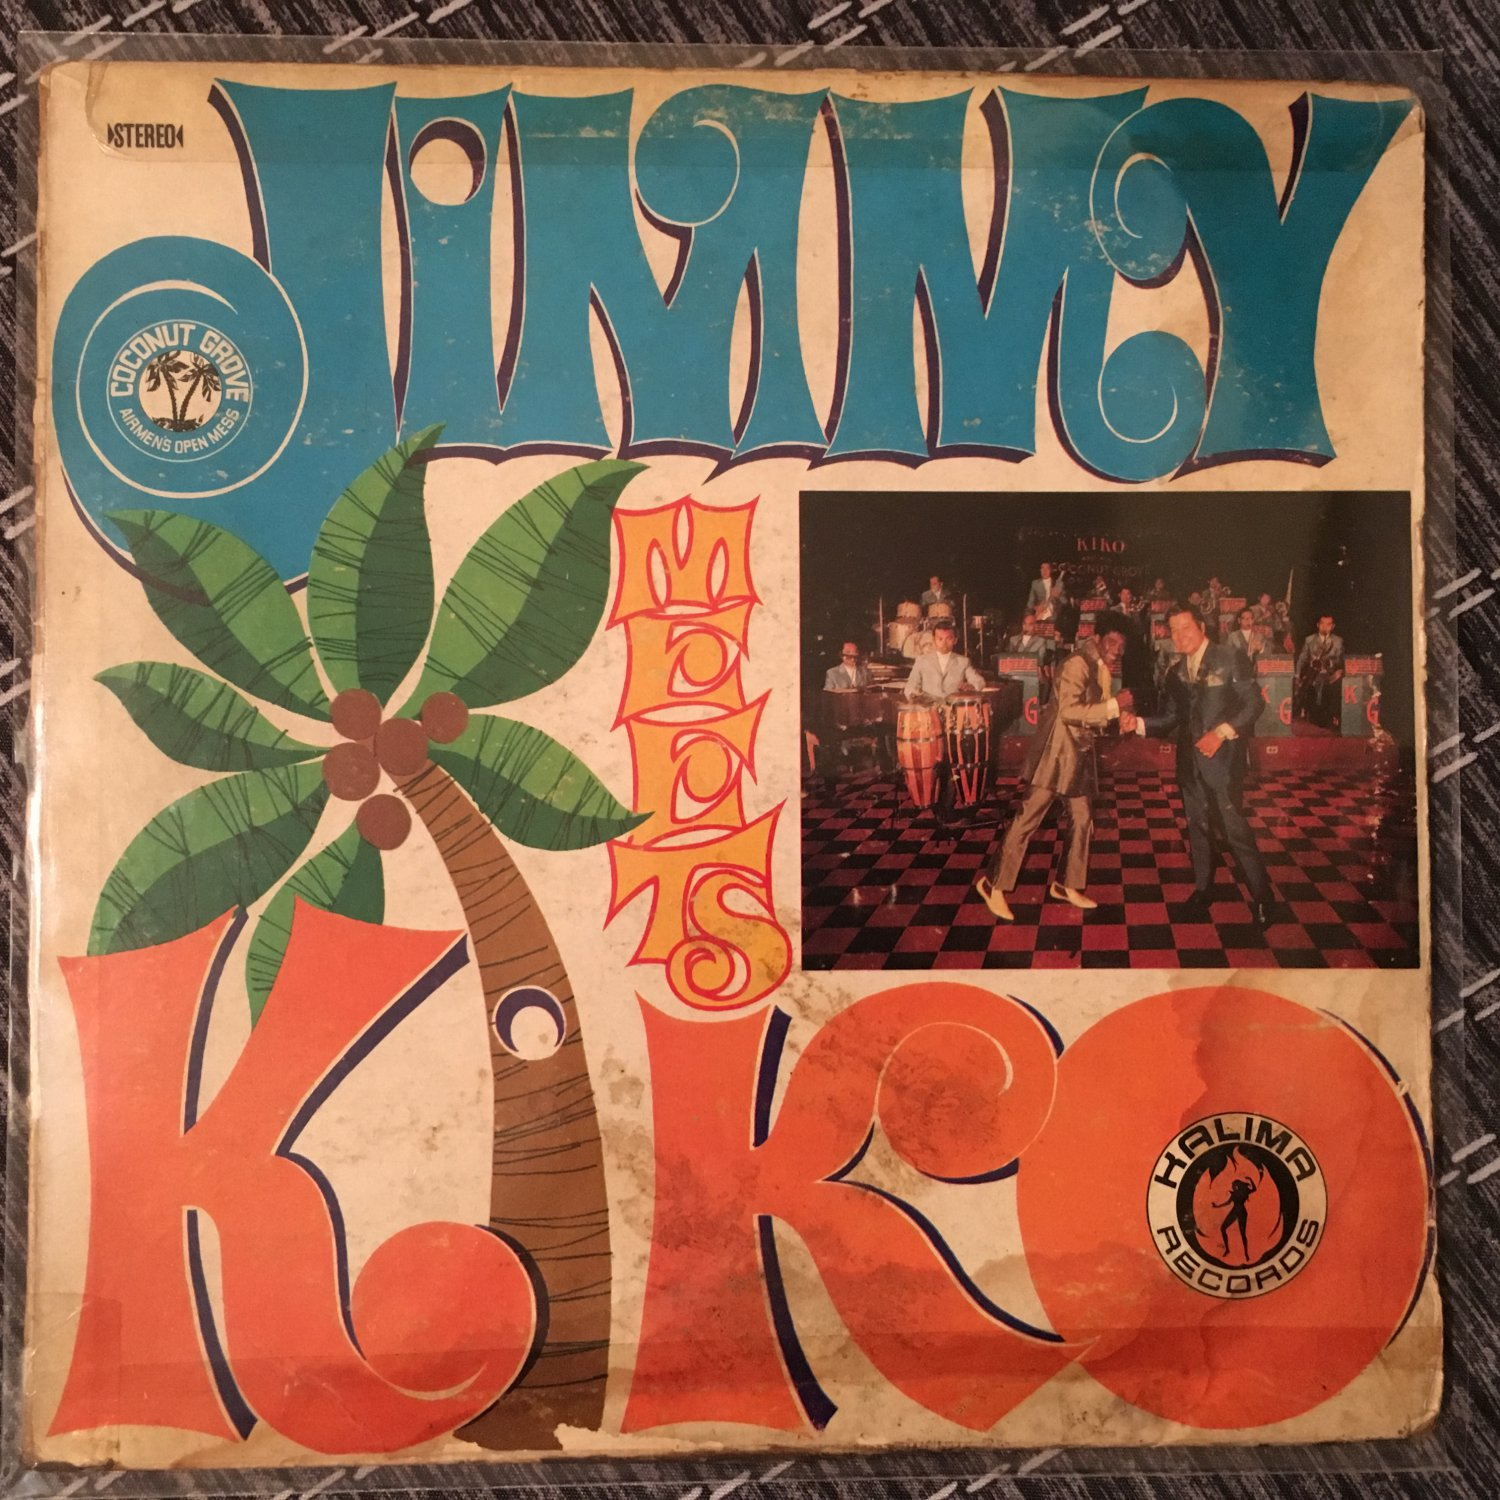 JIMMY MEETS KIKO LP same PHILIPPINES PRIVATE SOUL mp3 LISTEN